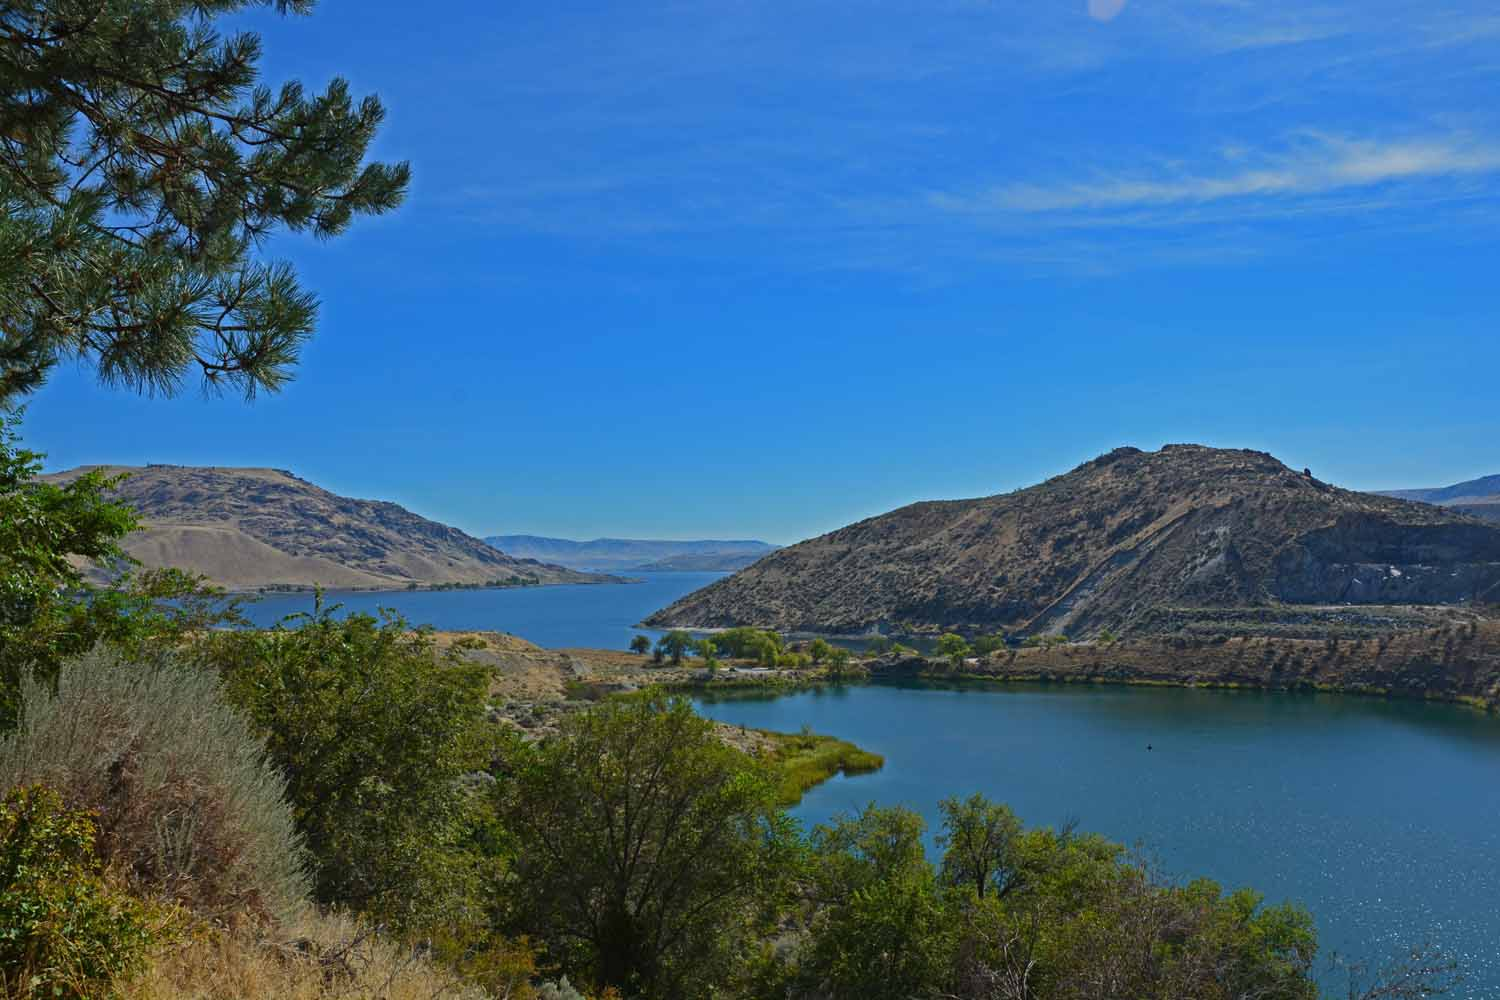 This is the back water on the Columbia River for the Grand Coulee Dam.  Nice view from the top of the hill.